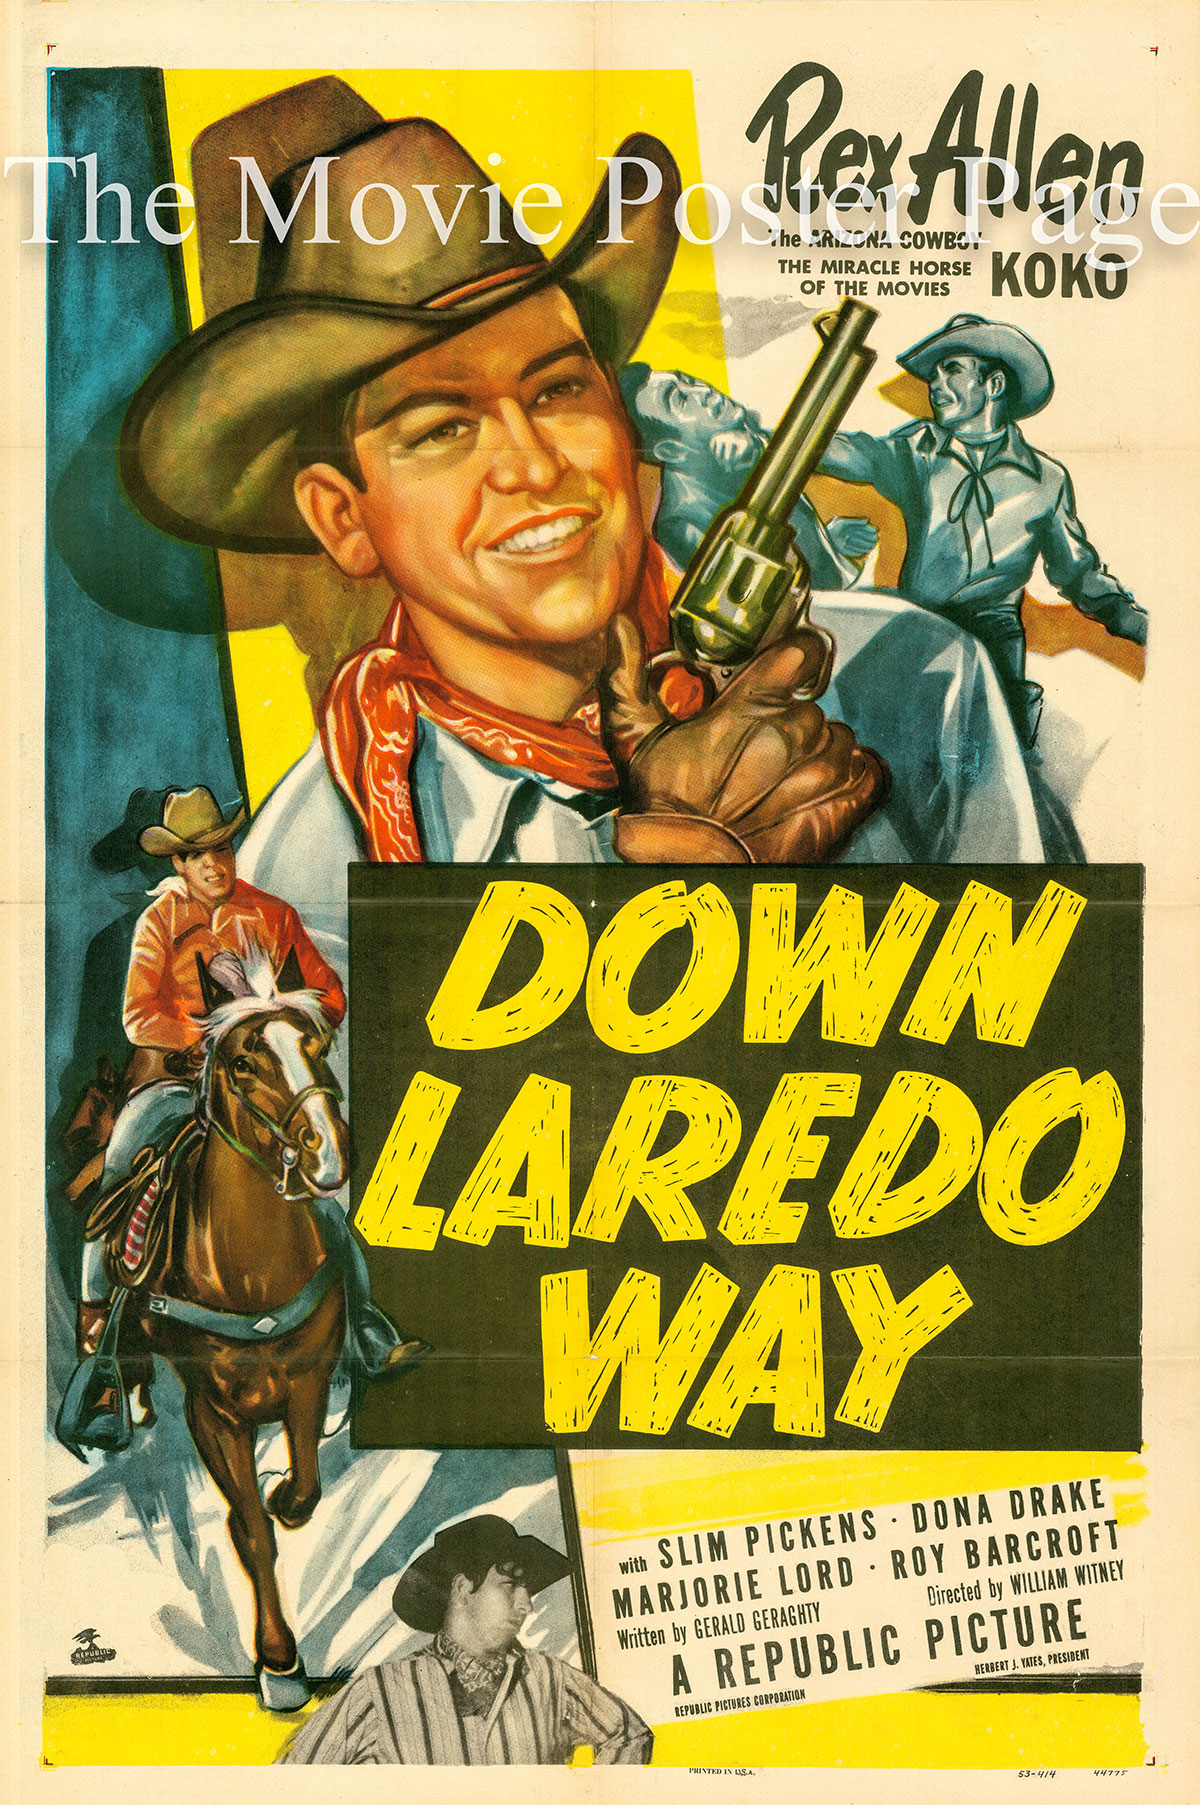 Pictured is a US promotional poster for the 1953 William Witney film Down Laredo Way starring Rex Allen.